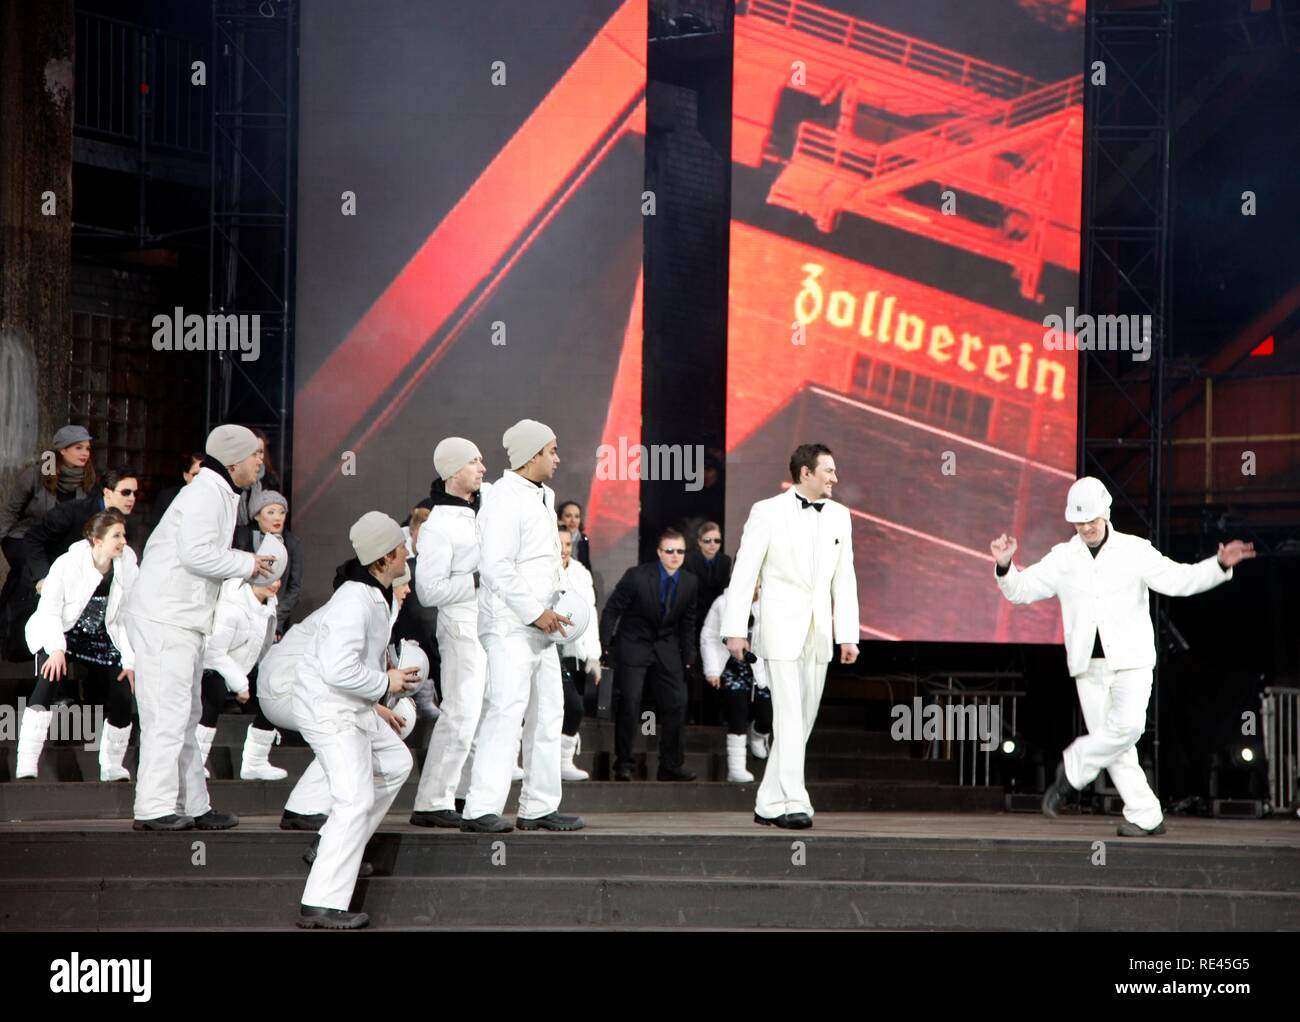 Dress rehearsal for the kick-off event of the Capital of Culture 2010 event, Kokerei Zollverein coking plant, part of the Zeche - Stock Image